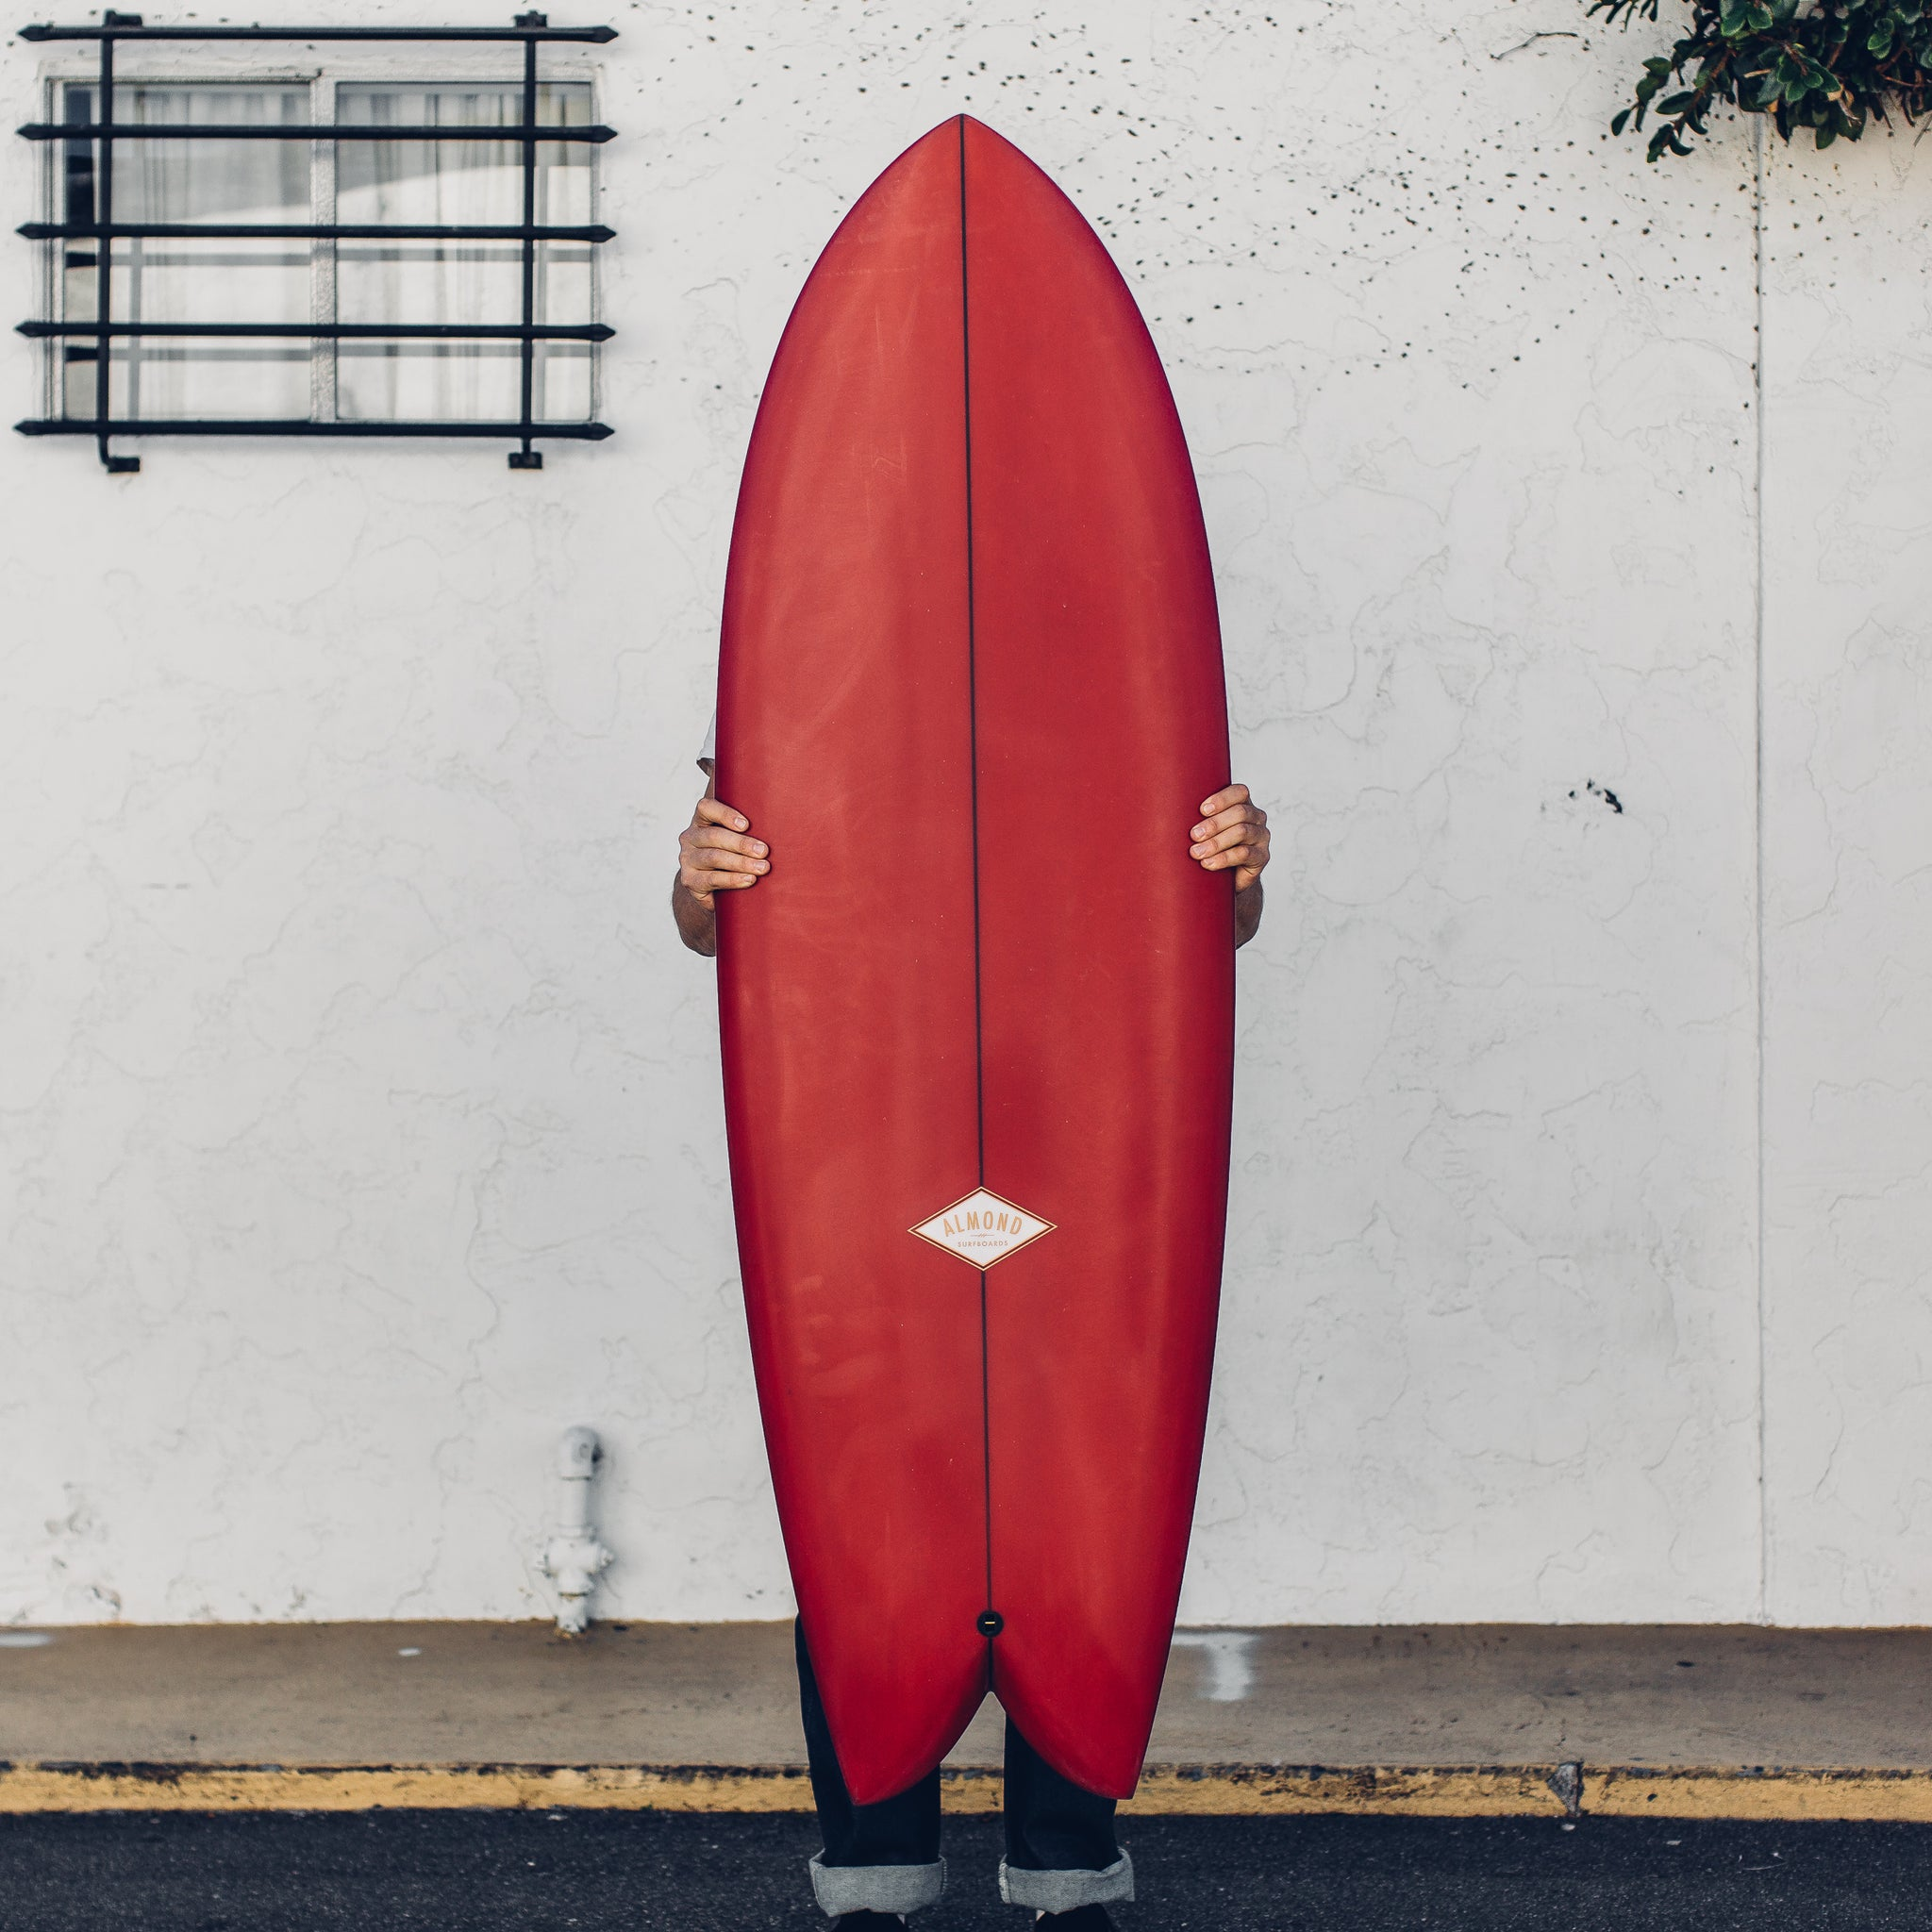 New Board Fridays 1 25 19 Almond Surfboards Designs